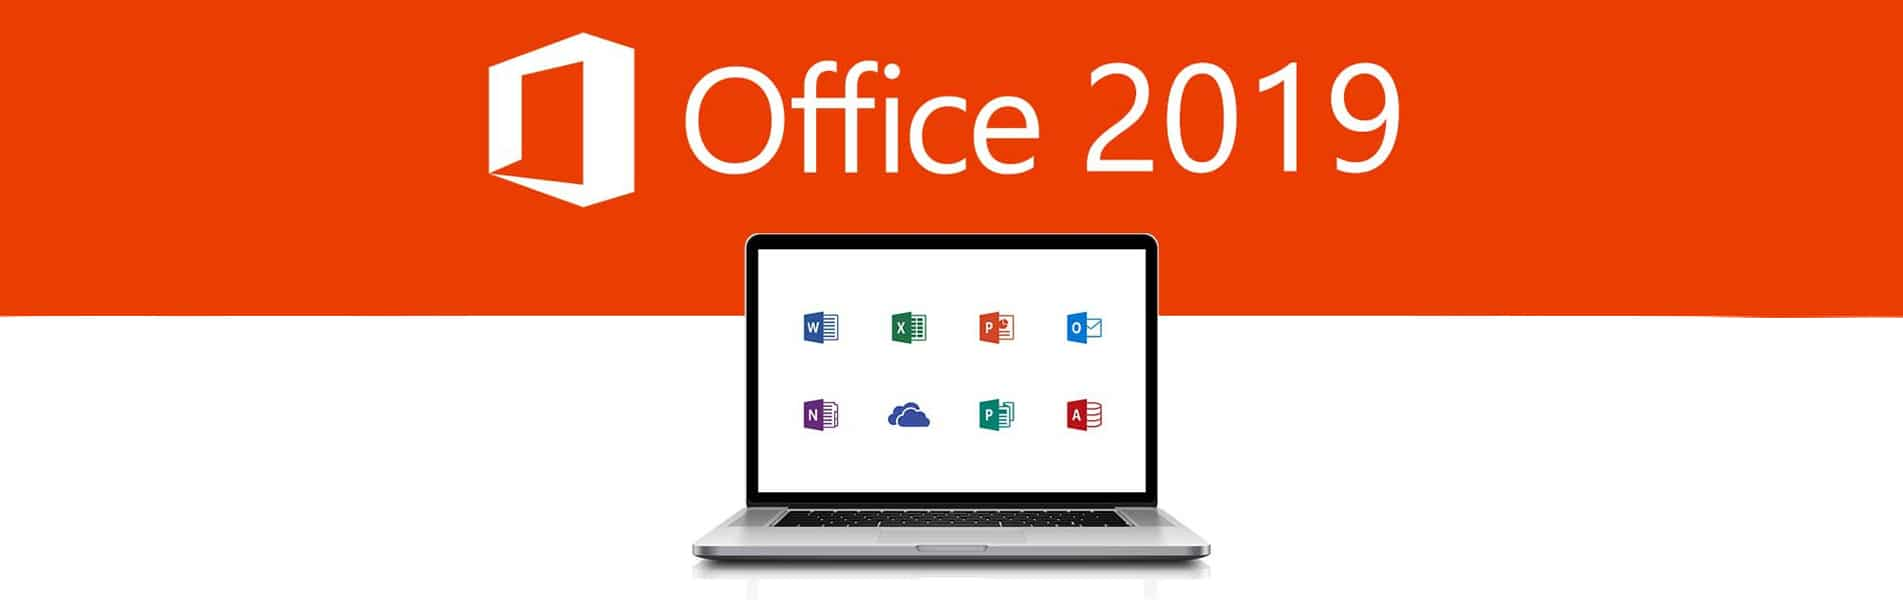 Office 2019 or Office 365 for Your Business? Part 2 | Office